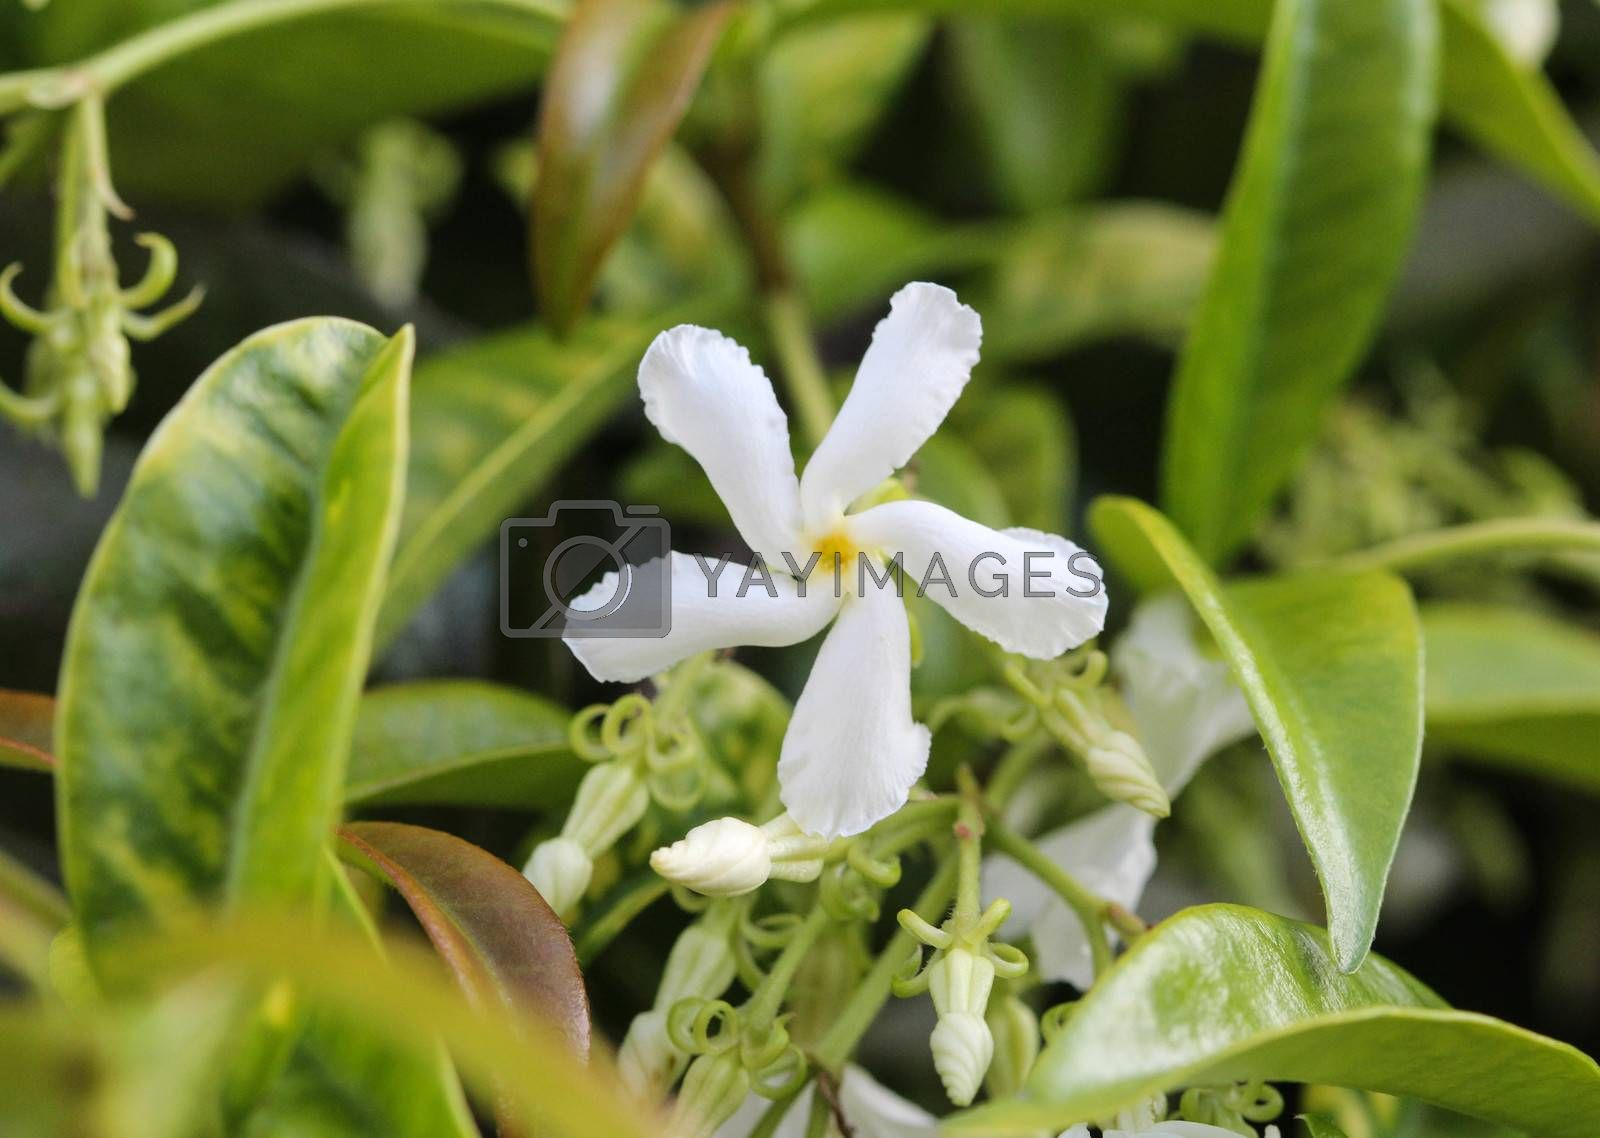 Royalty free image of Trachelospermum jasminoides, Common names include confederate jasmine, southern jasmine, star jasmine, confederate jessamine, and Chinese star jasmine, blooming in garden by michaelmeijer